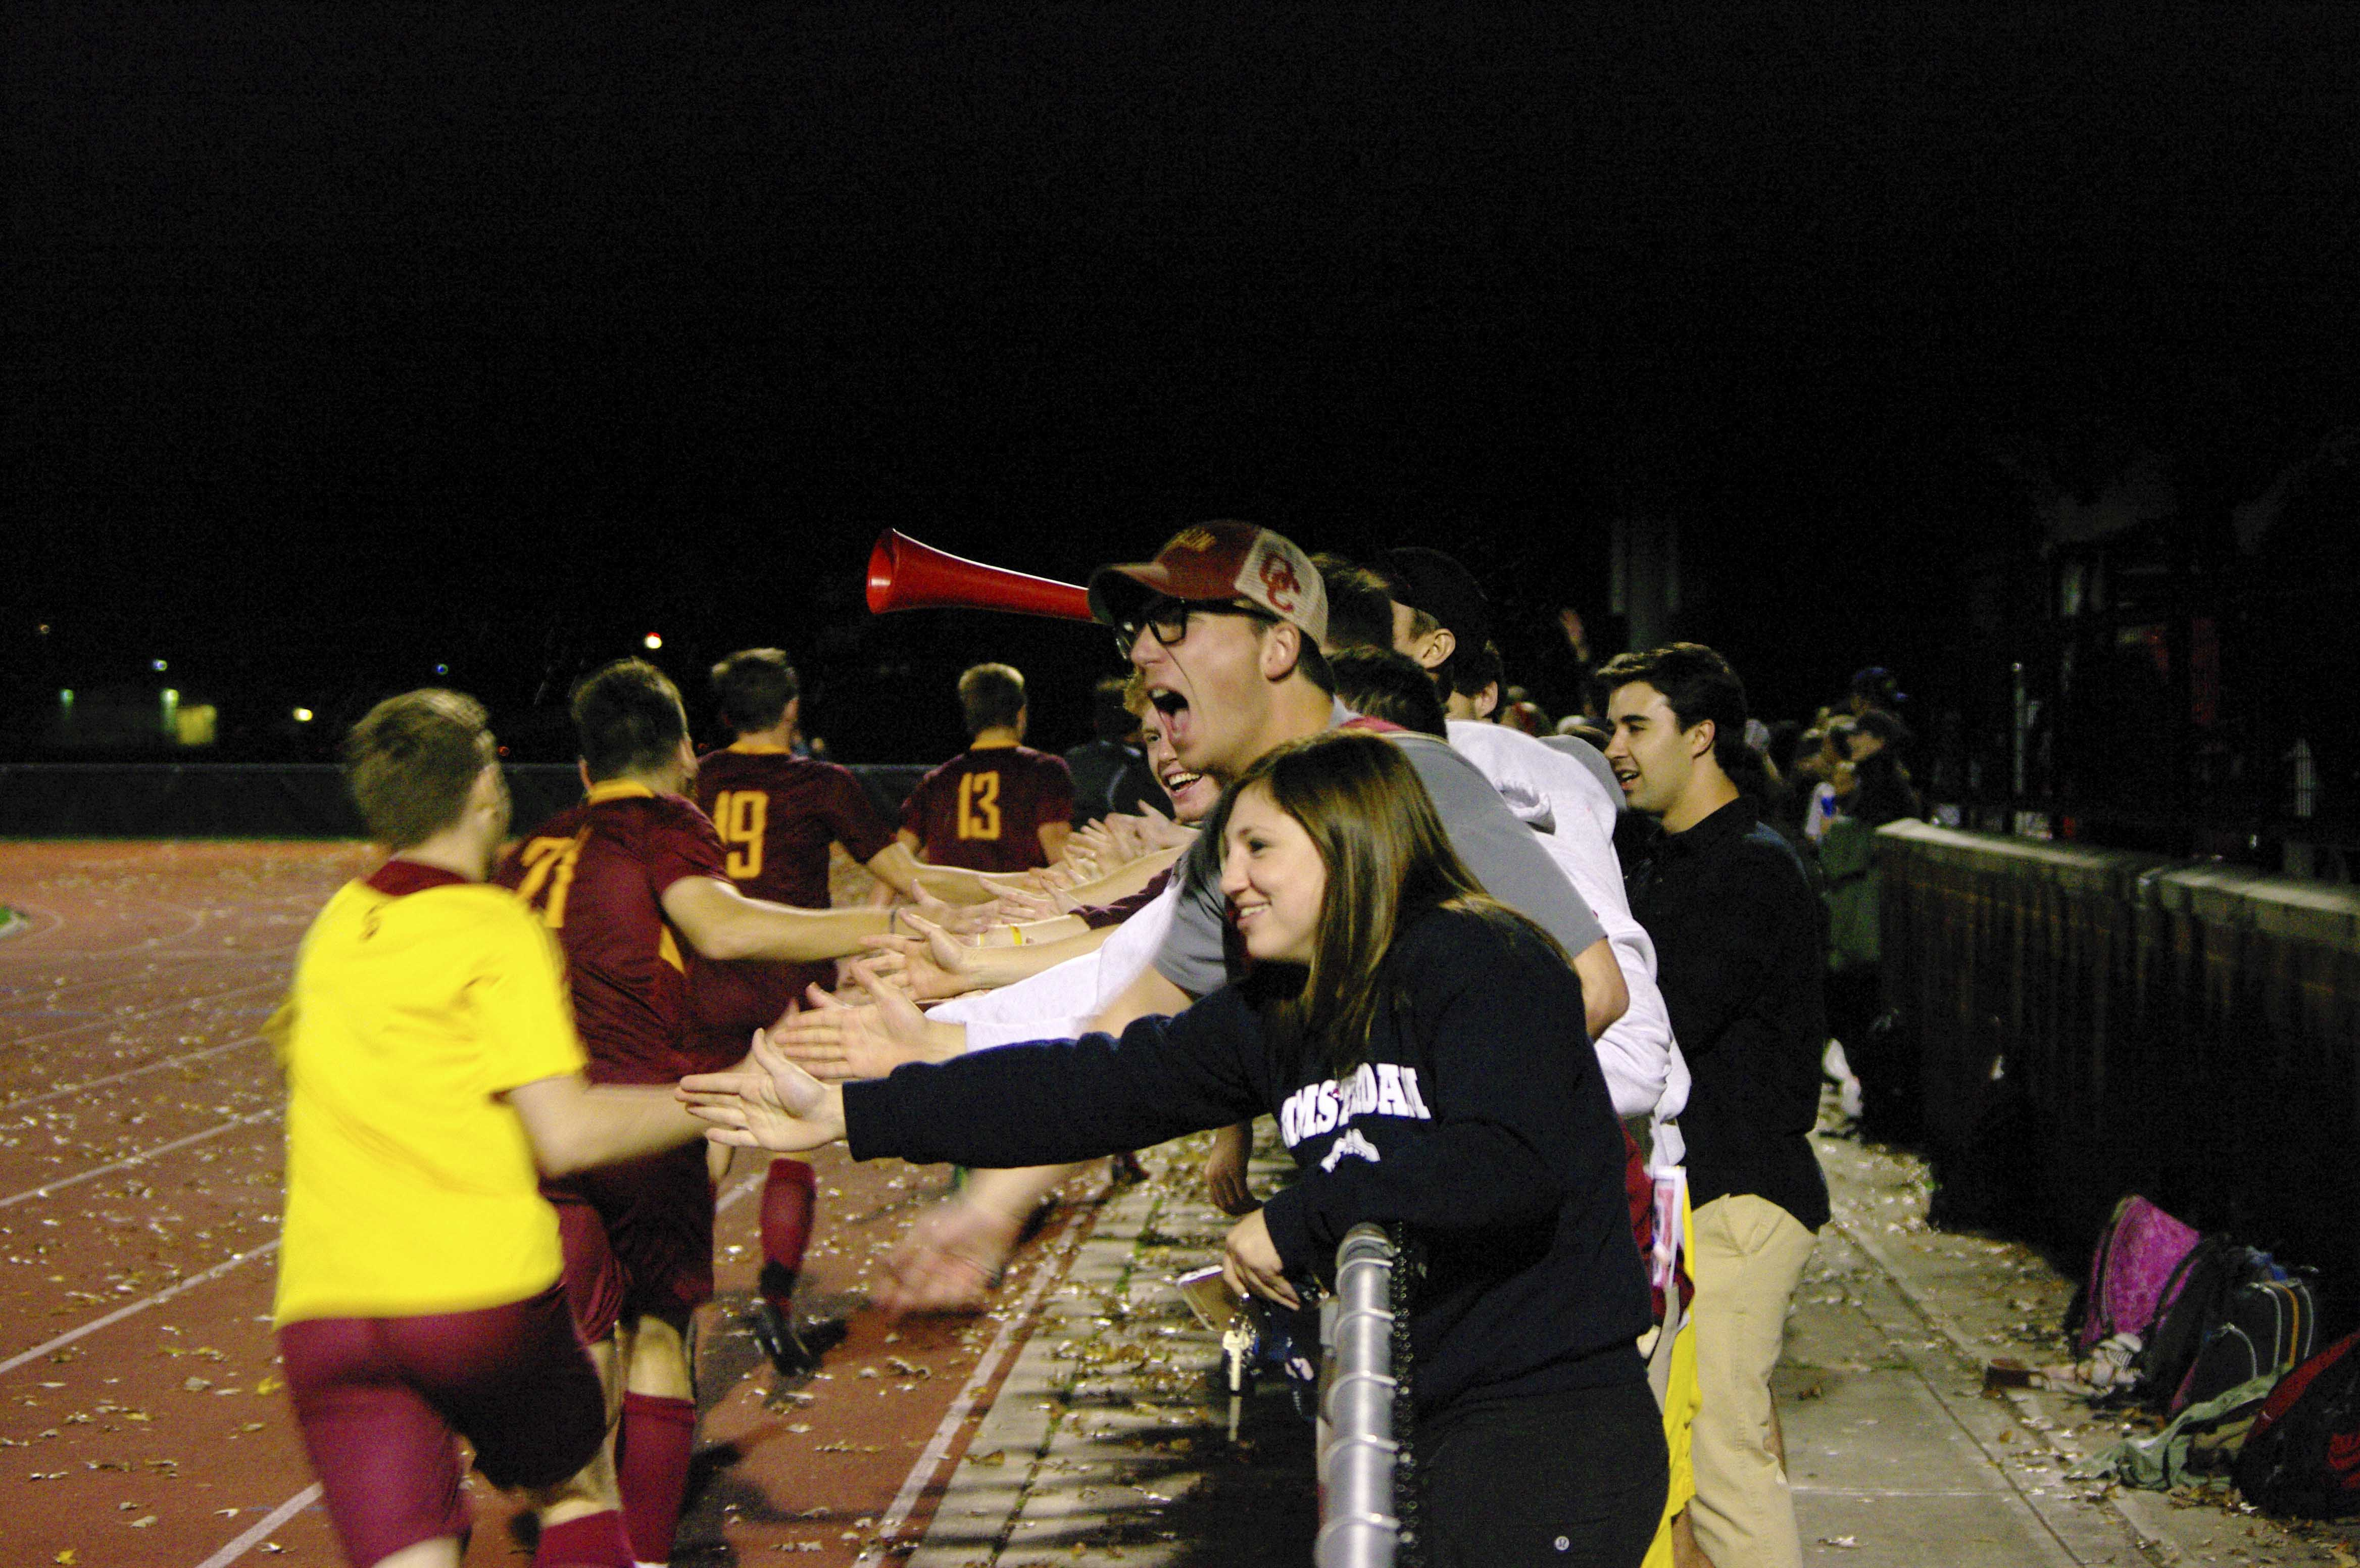 Fans congratulate the Yeomen after their 2–1 NCAC semifinal victory over Wabash College. The victory propelled the team to its first conference championship match in school history.